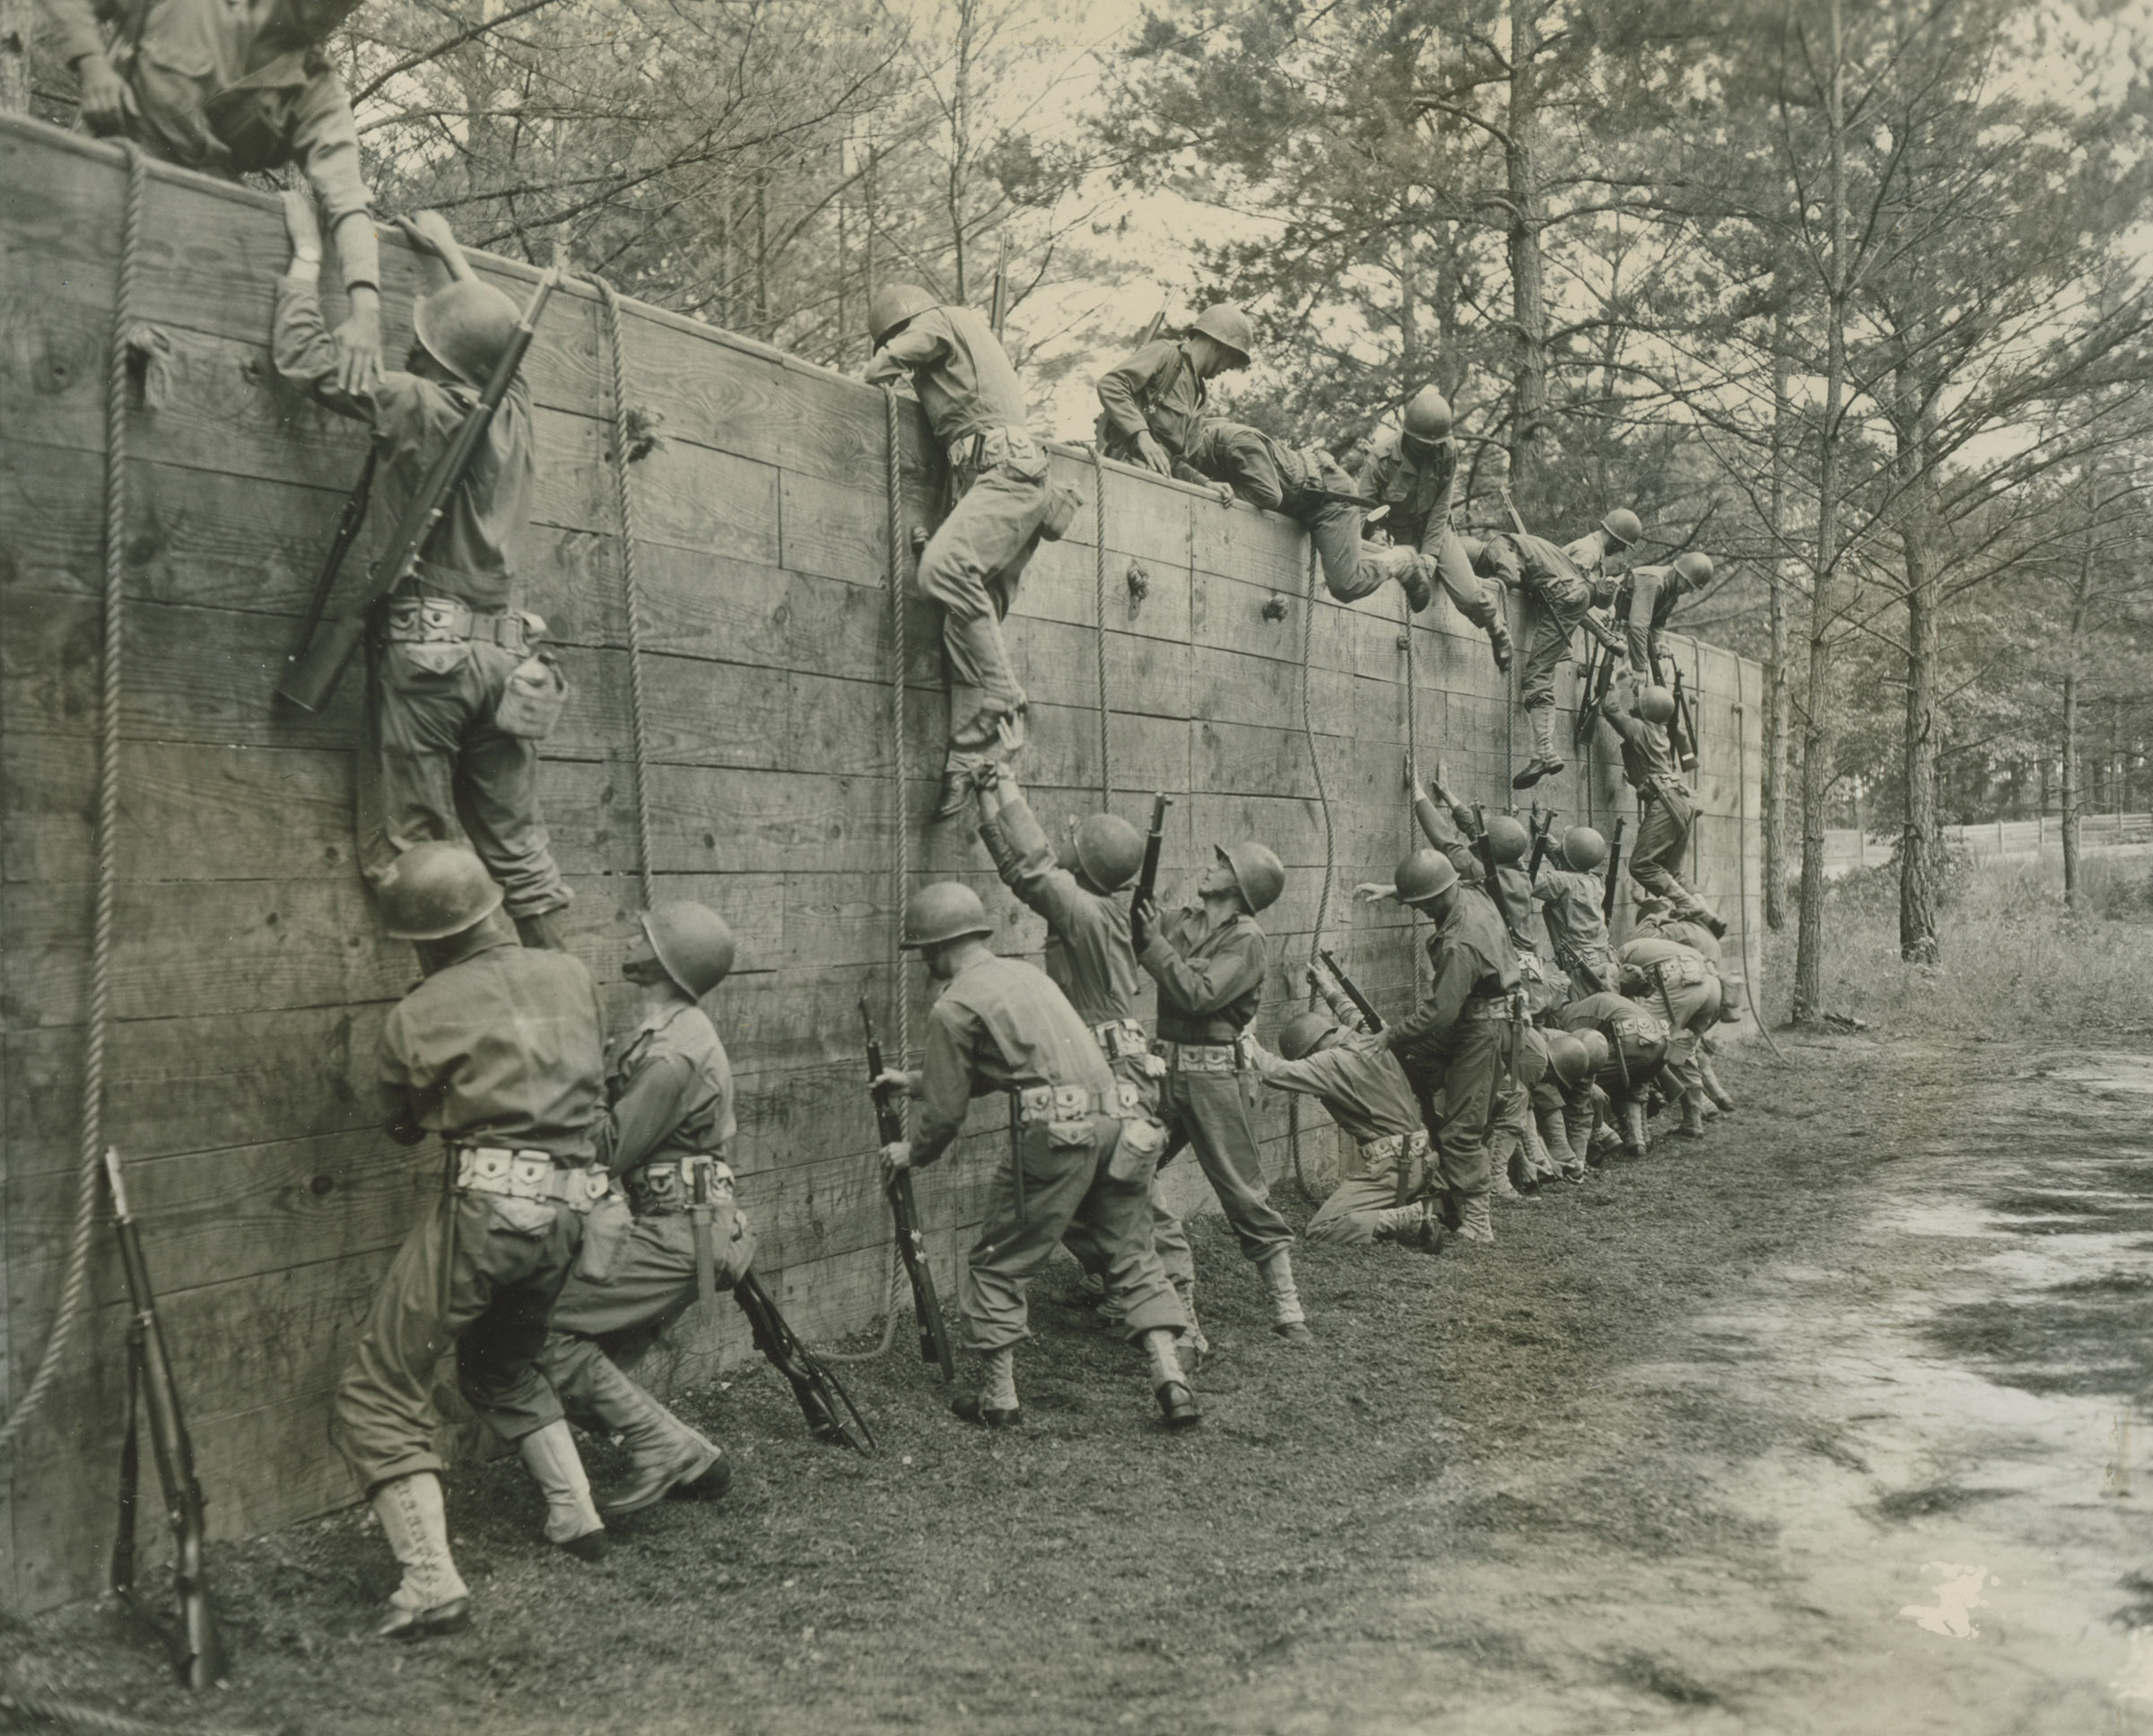 A group of infantrymen scaling an obstacle in training